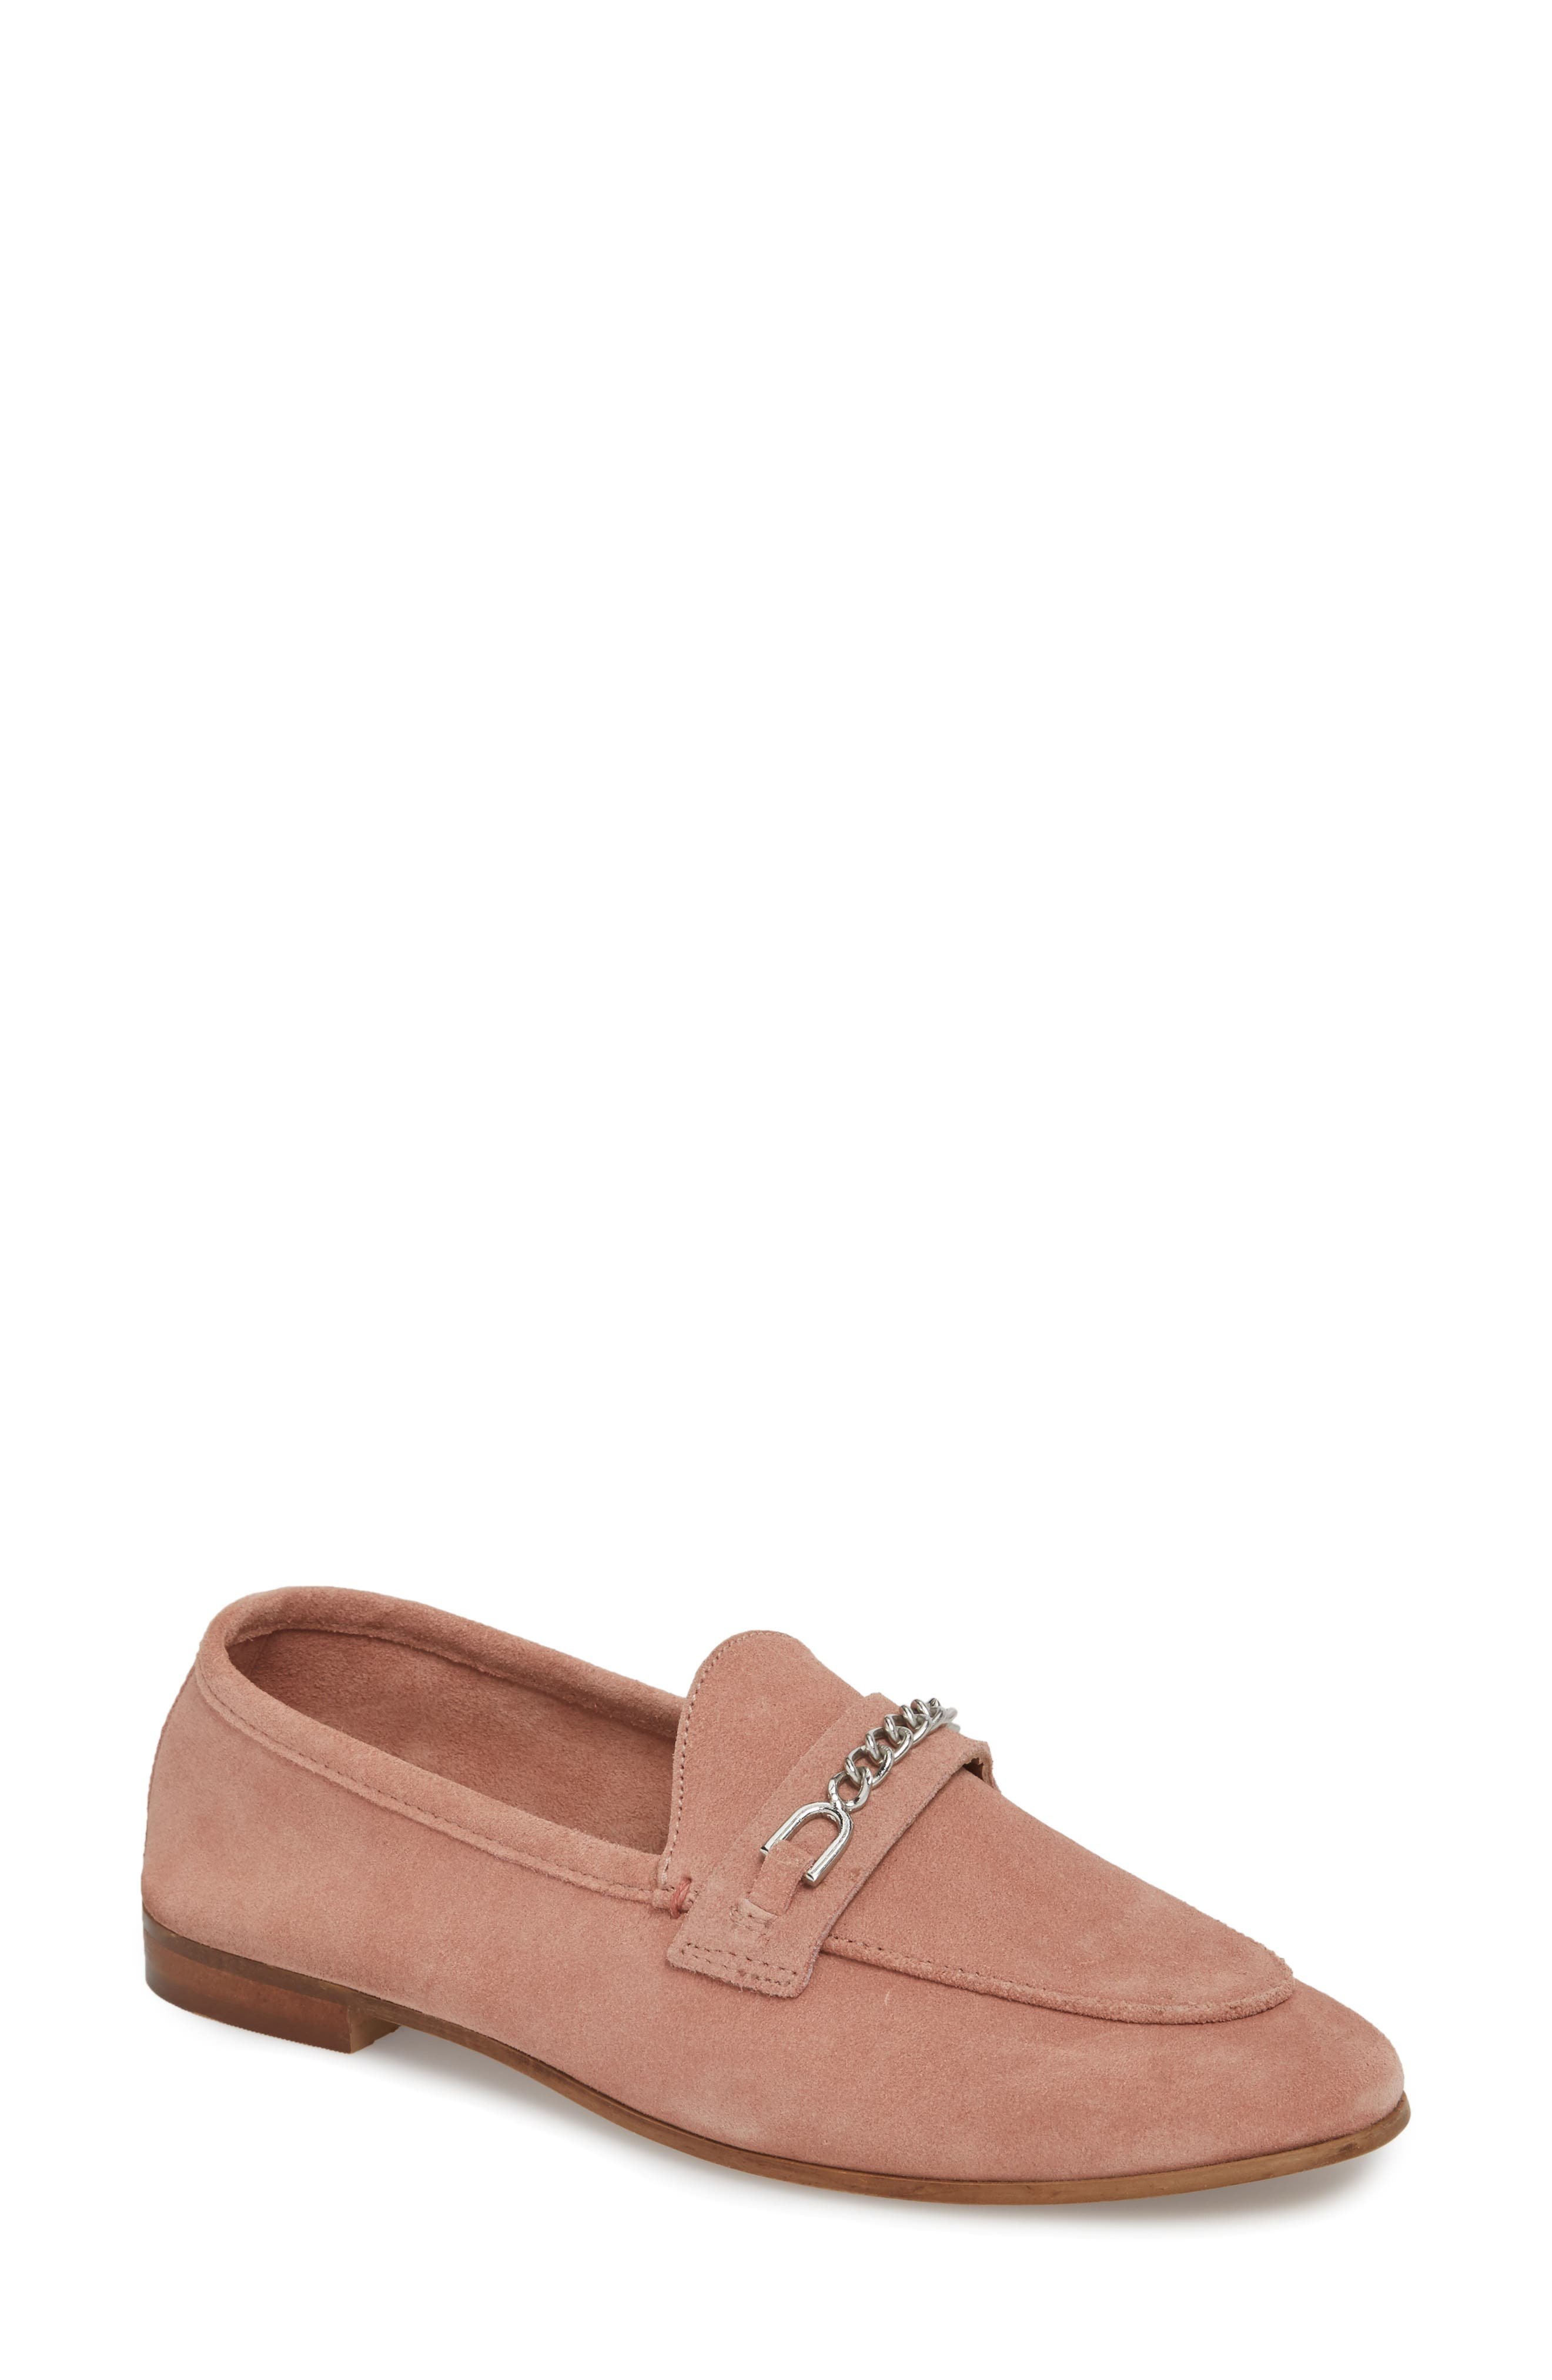 Key Trim Chain Loafer,                             Main thumbnail 1, color,                             Pink Multi